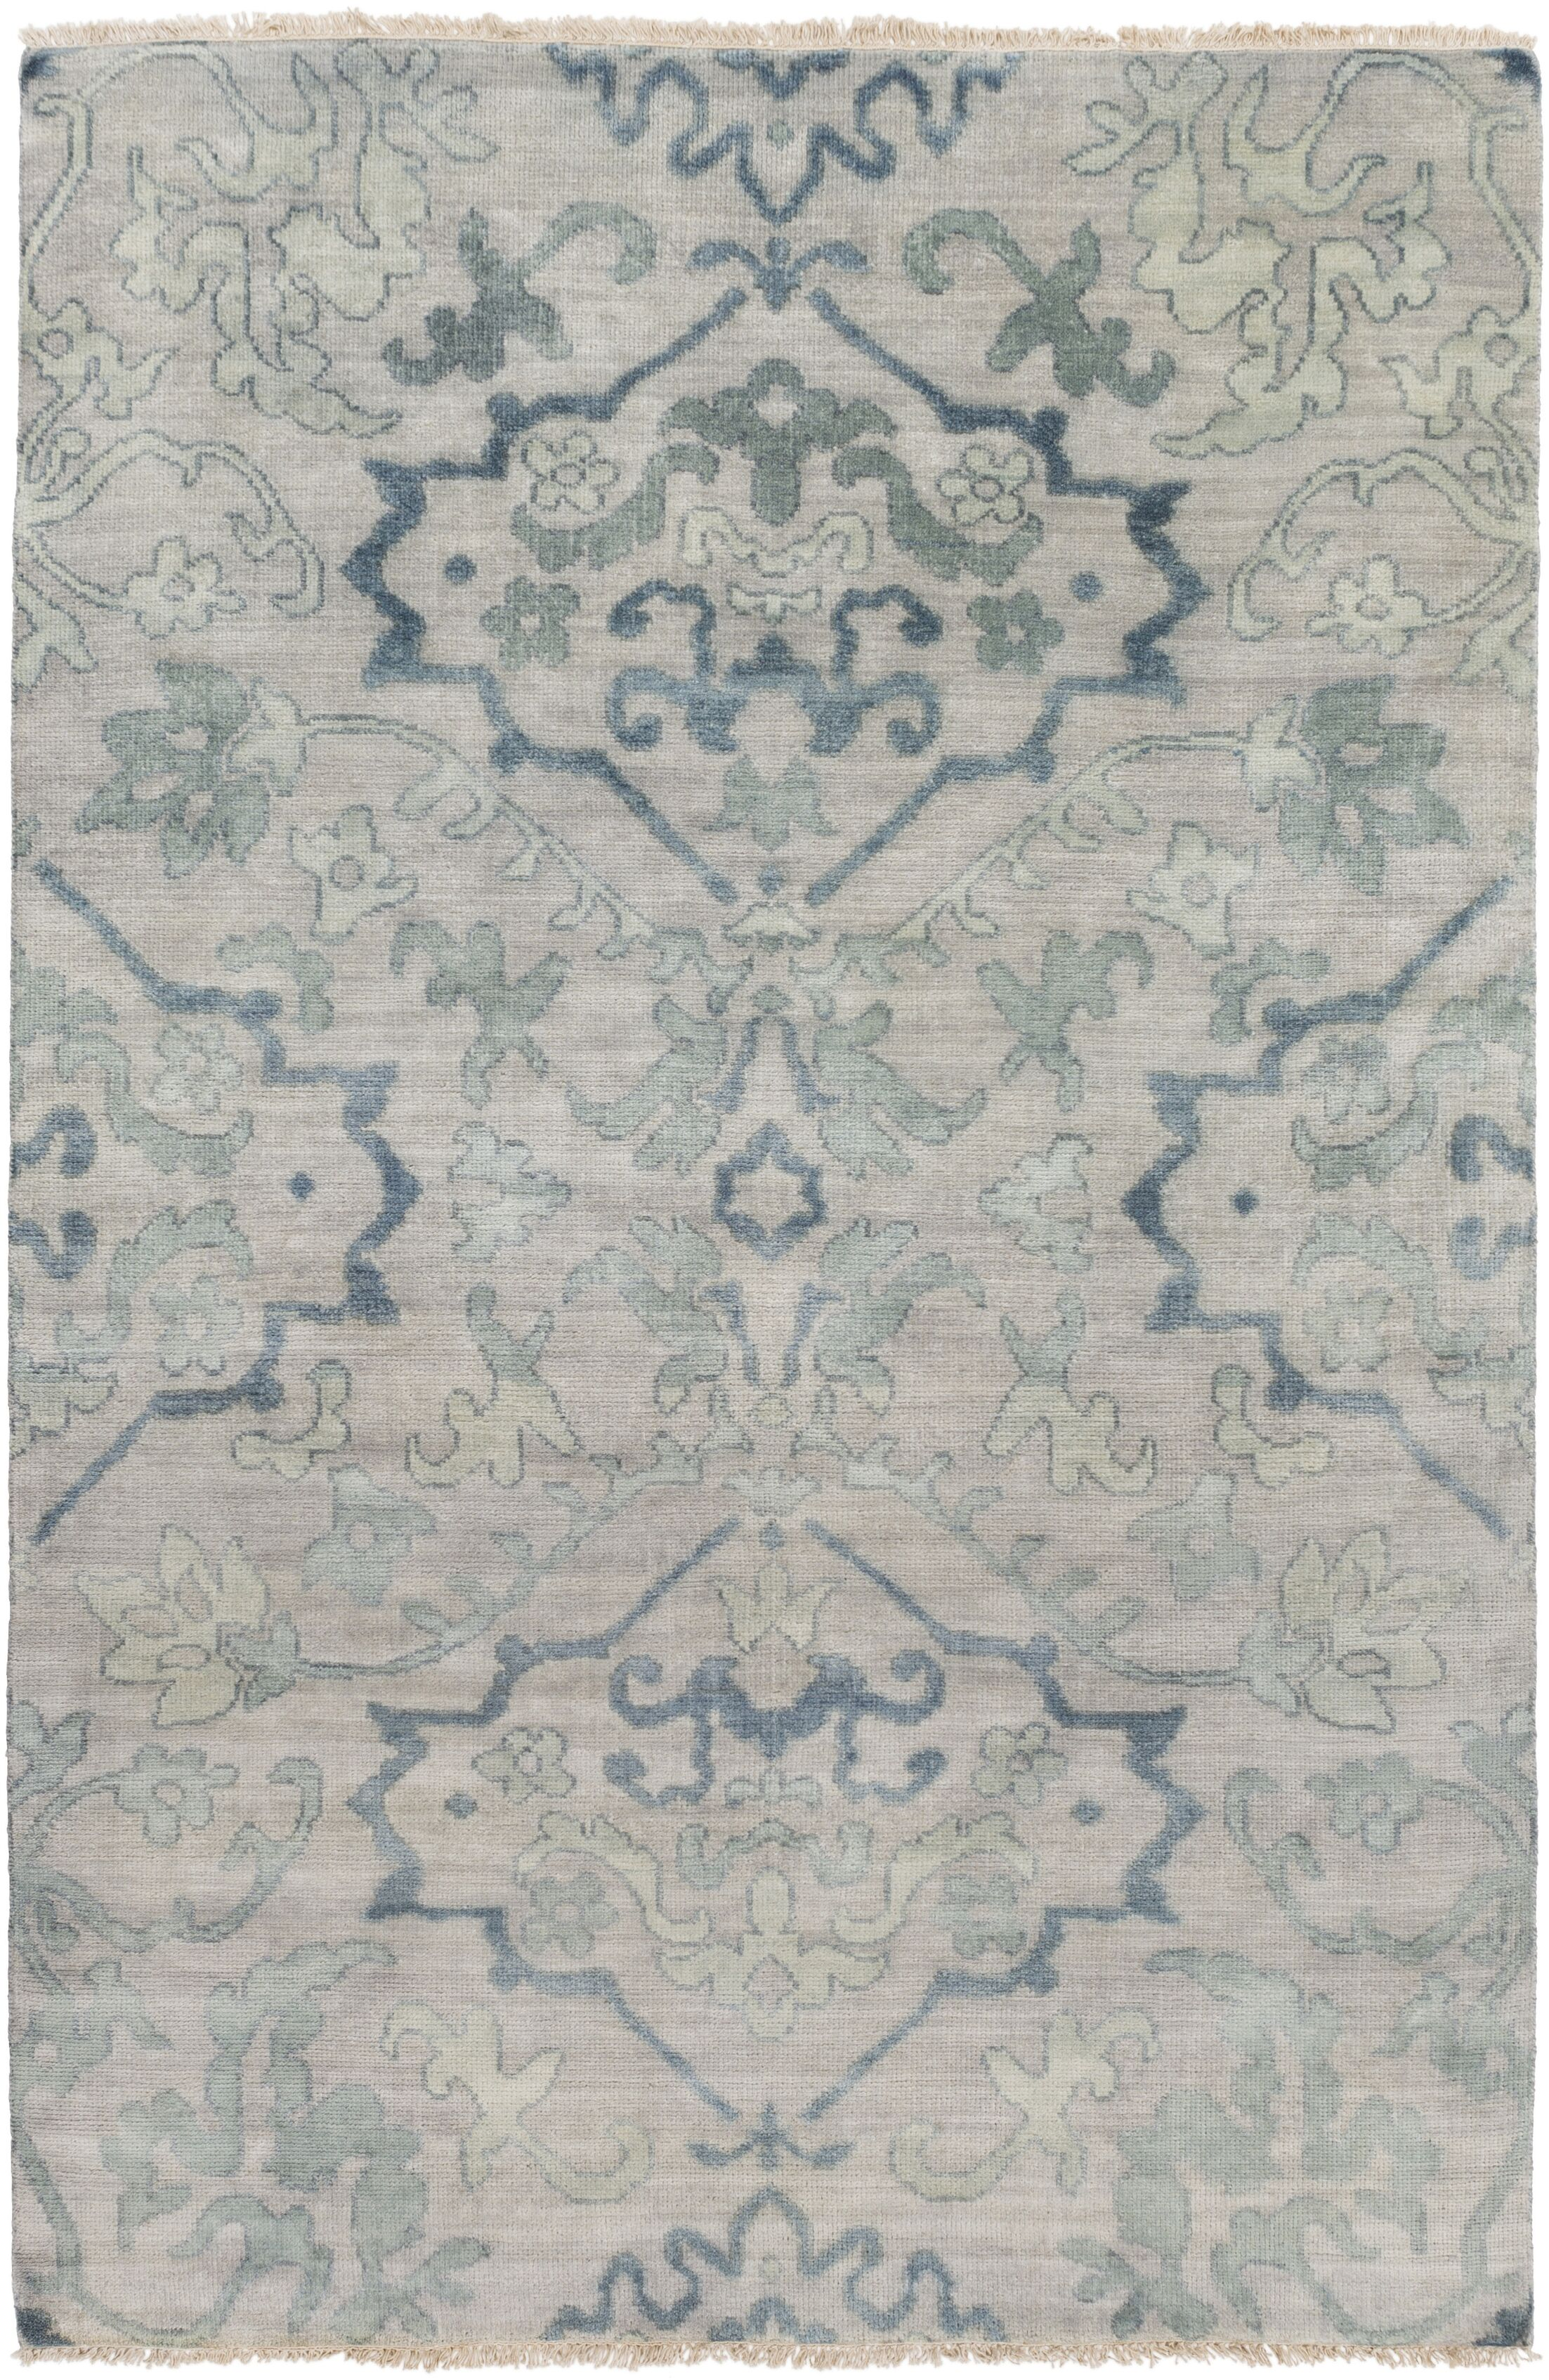 San Michele Hand-Knotted Gray Area Rug Rug Size: Rectangle 3'6